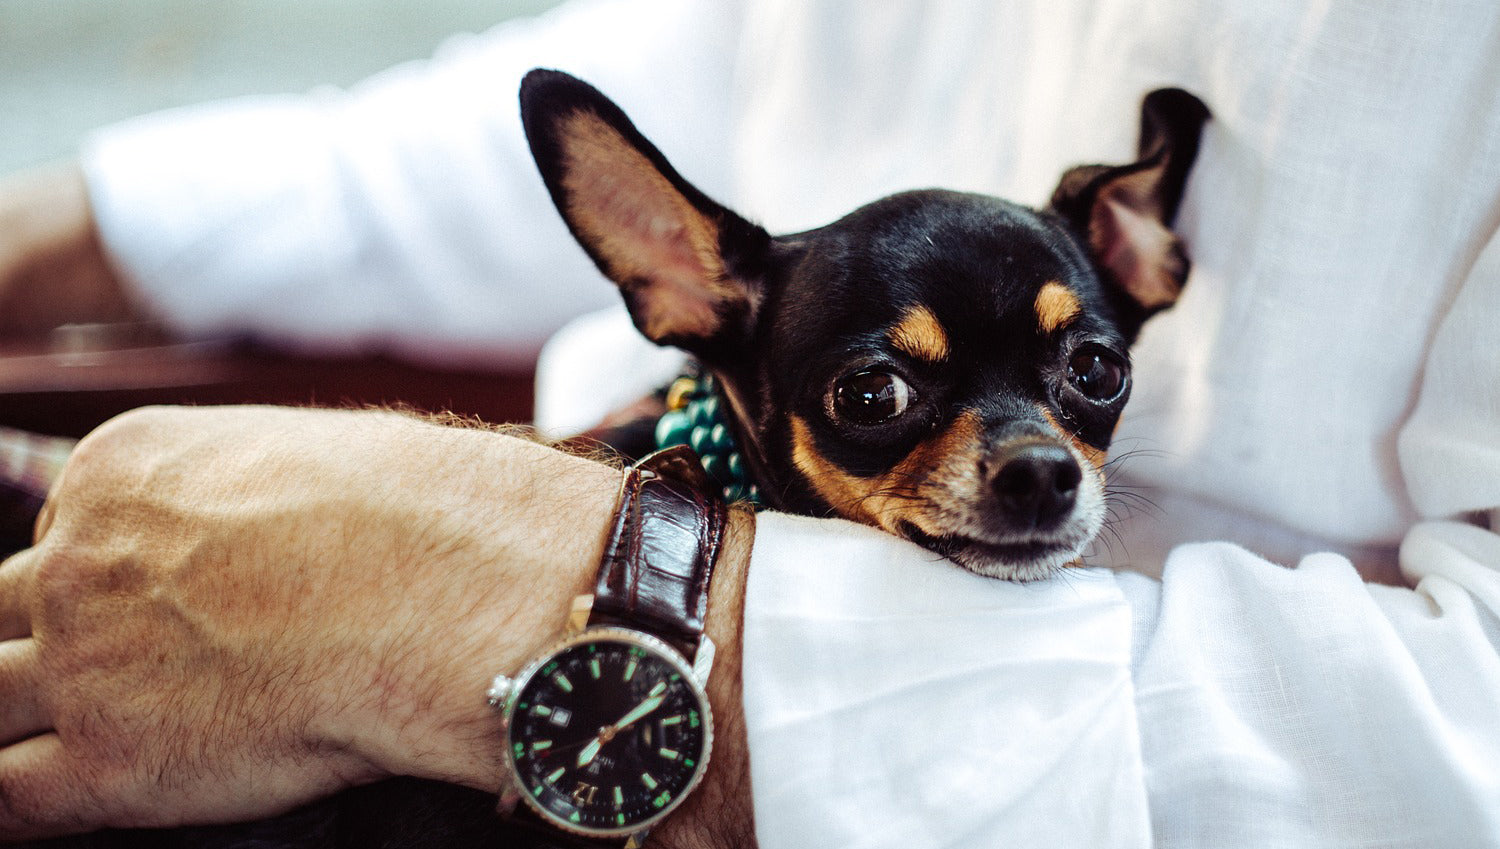 Small black and tan chihuahua cross sitting on the lap of a person wearing a white shirt and watch